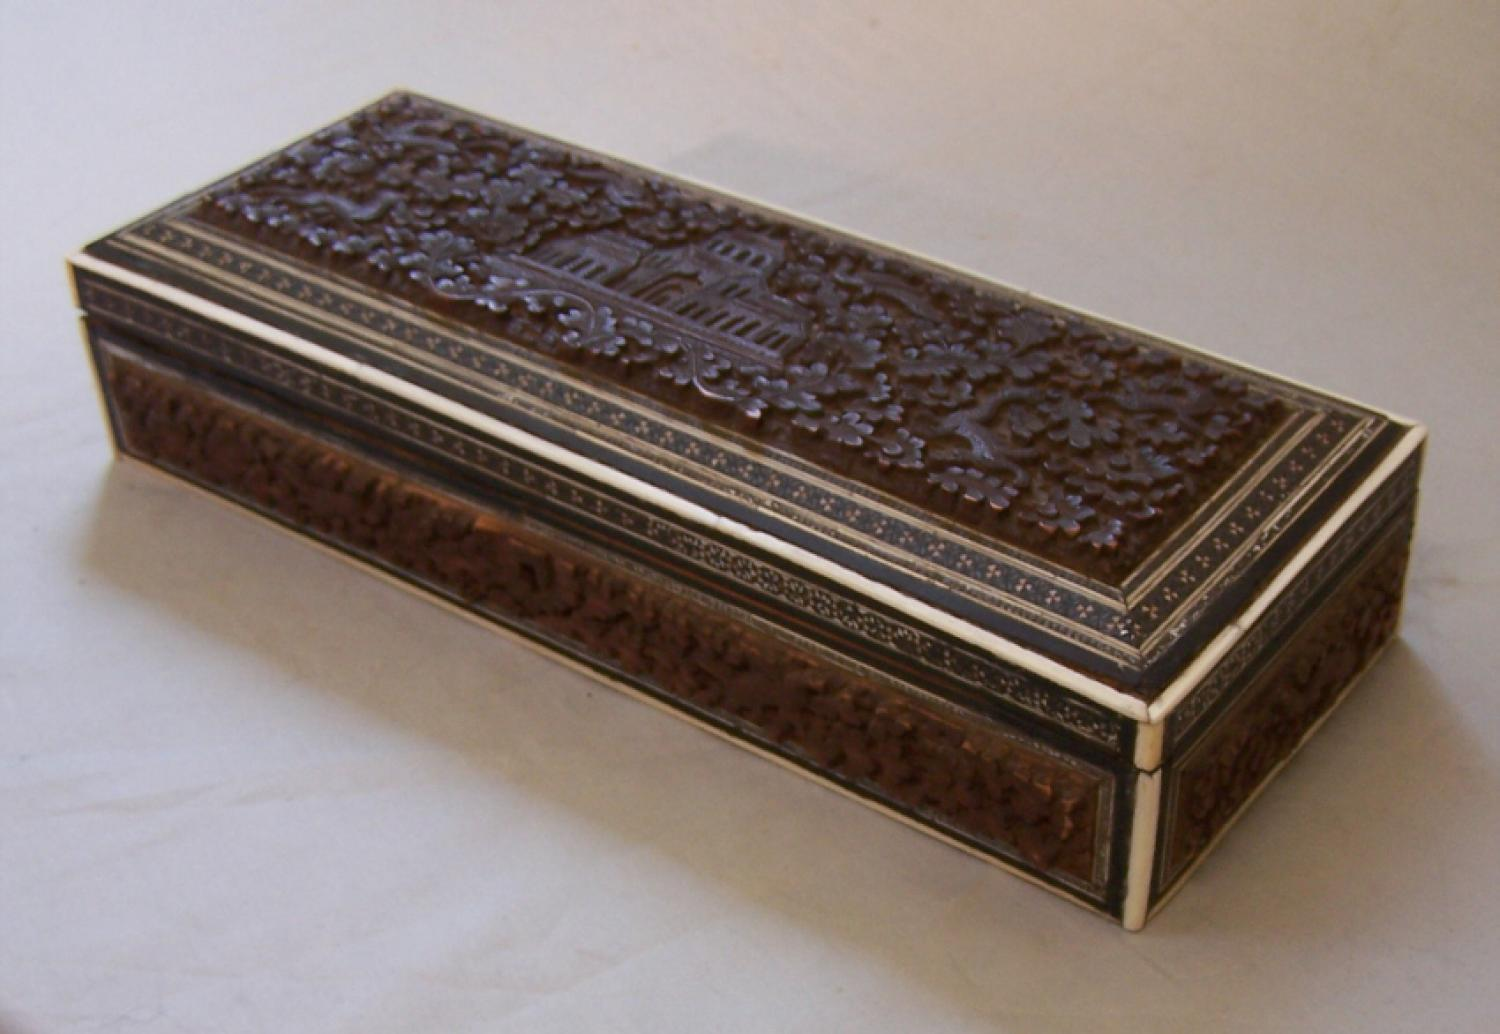 Antique Anglo India sandalwood glove box c1855